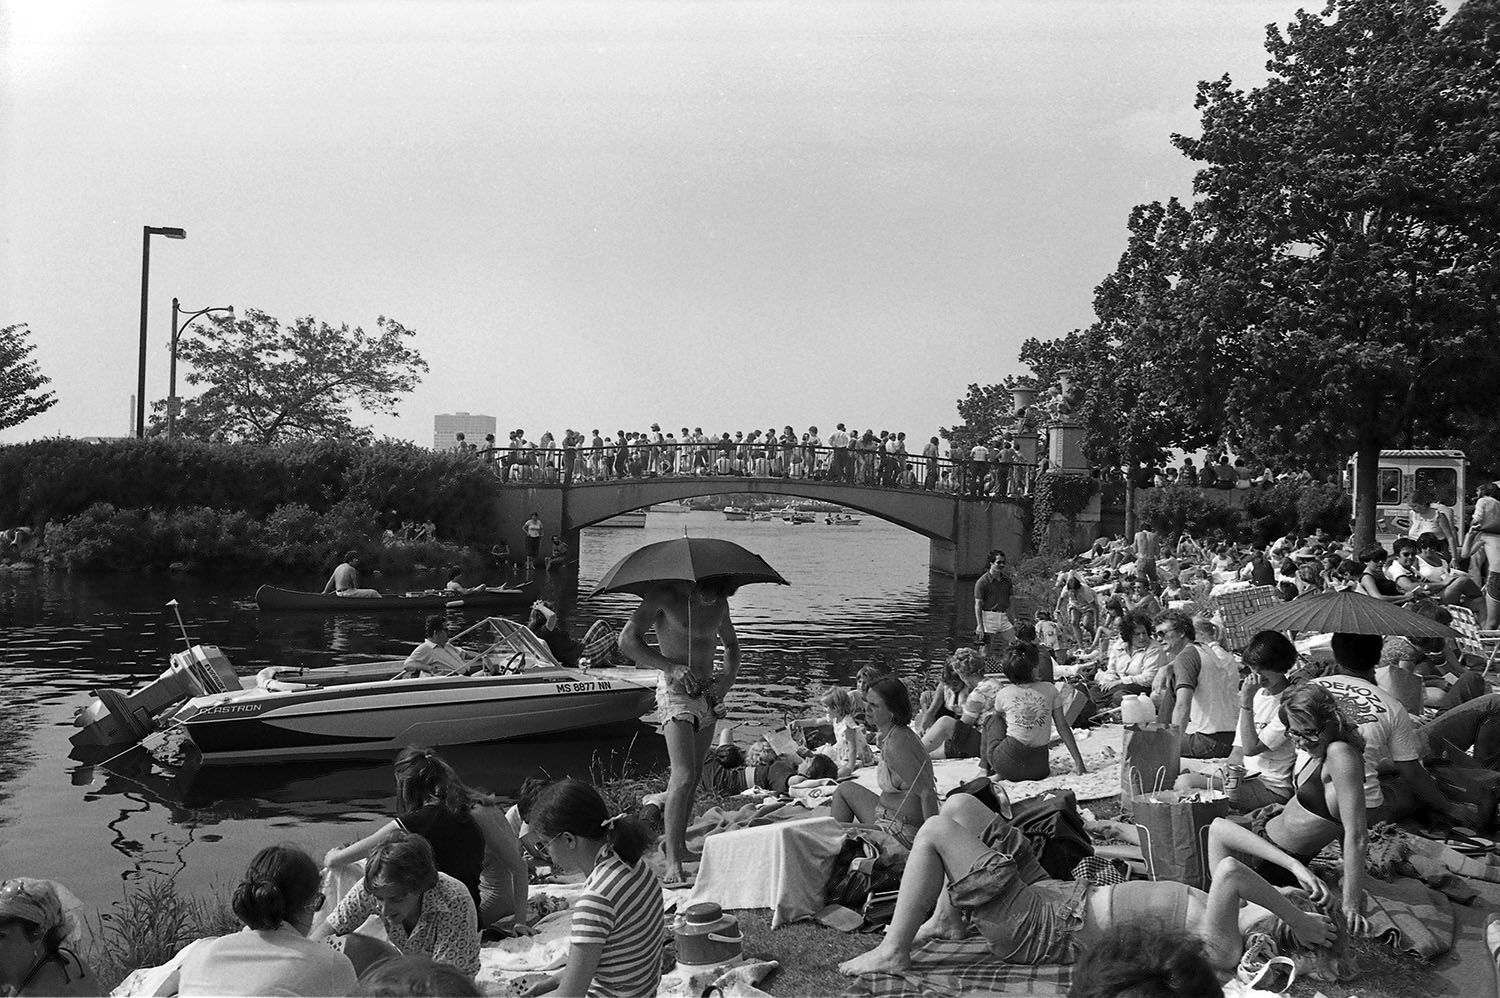 Boston Esplanade on July 4th 1977